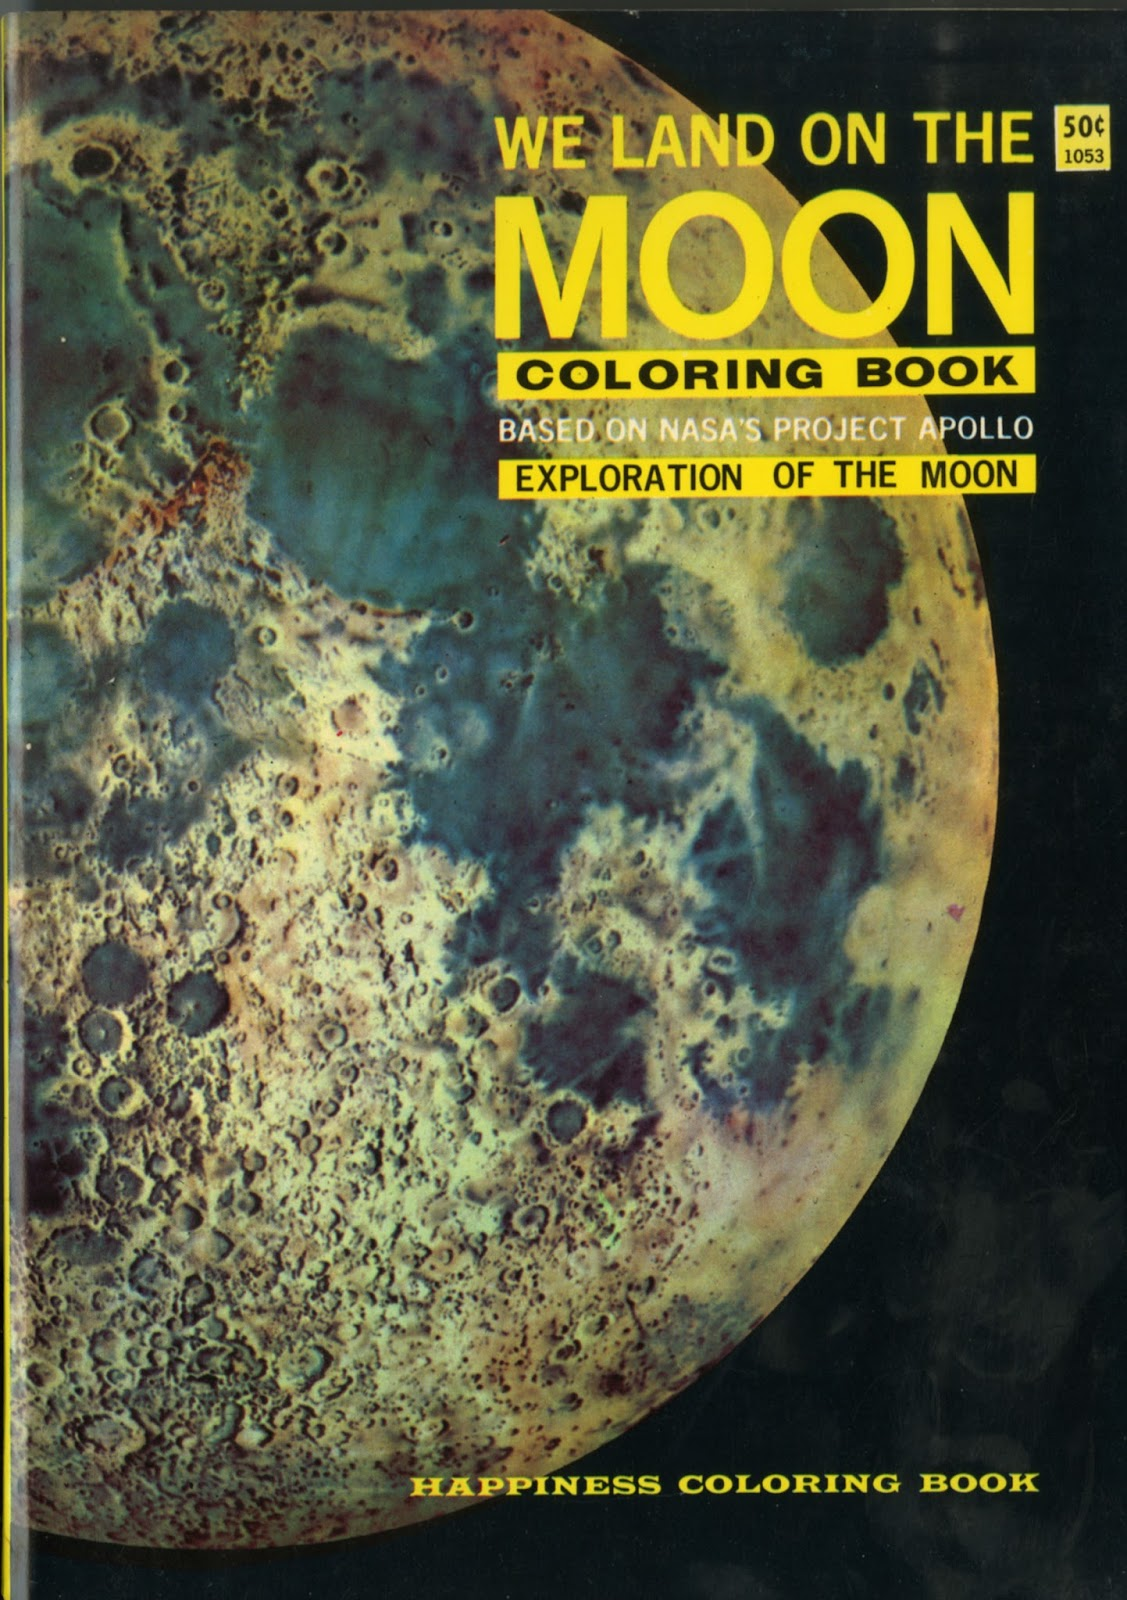 Dreams of Space - Books and Ephemera: We Land On The Moon Coloring ...